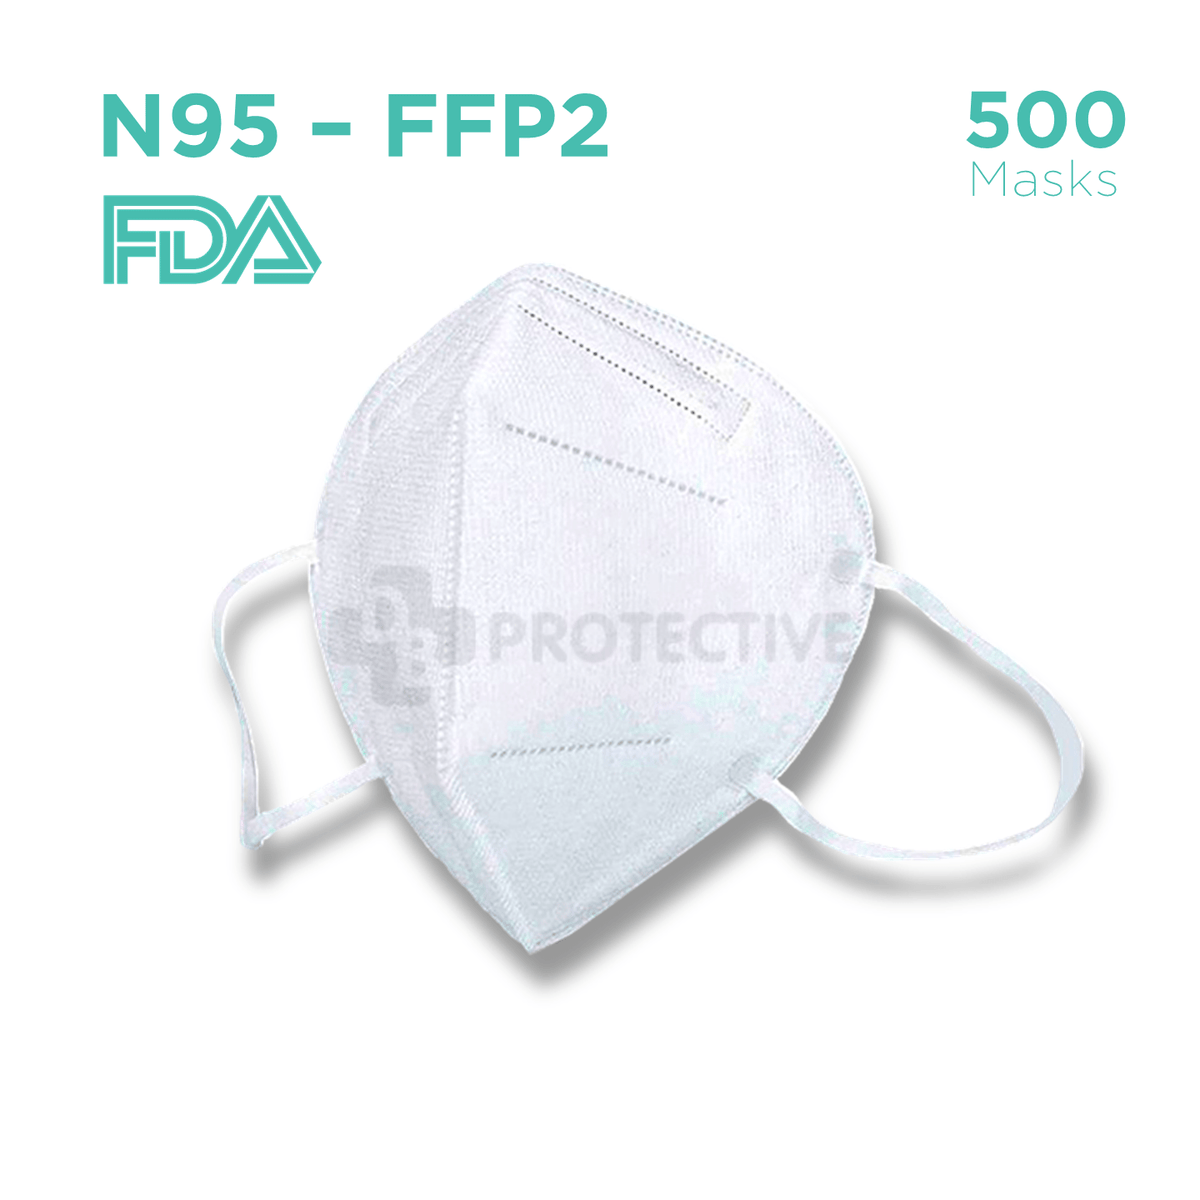 N95 FFP2 Medical Protective Face Mask - Pack of 500